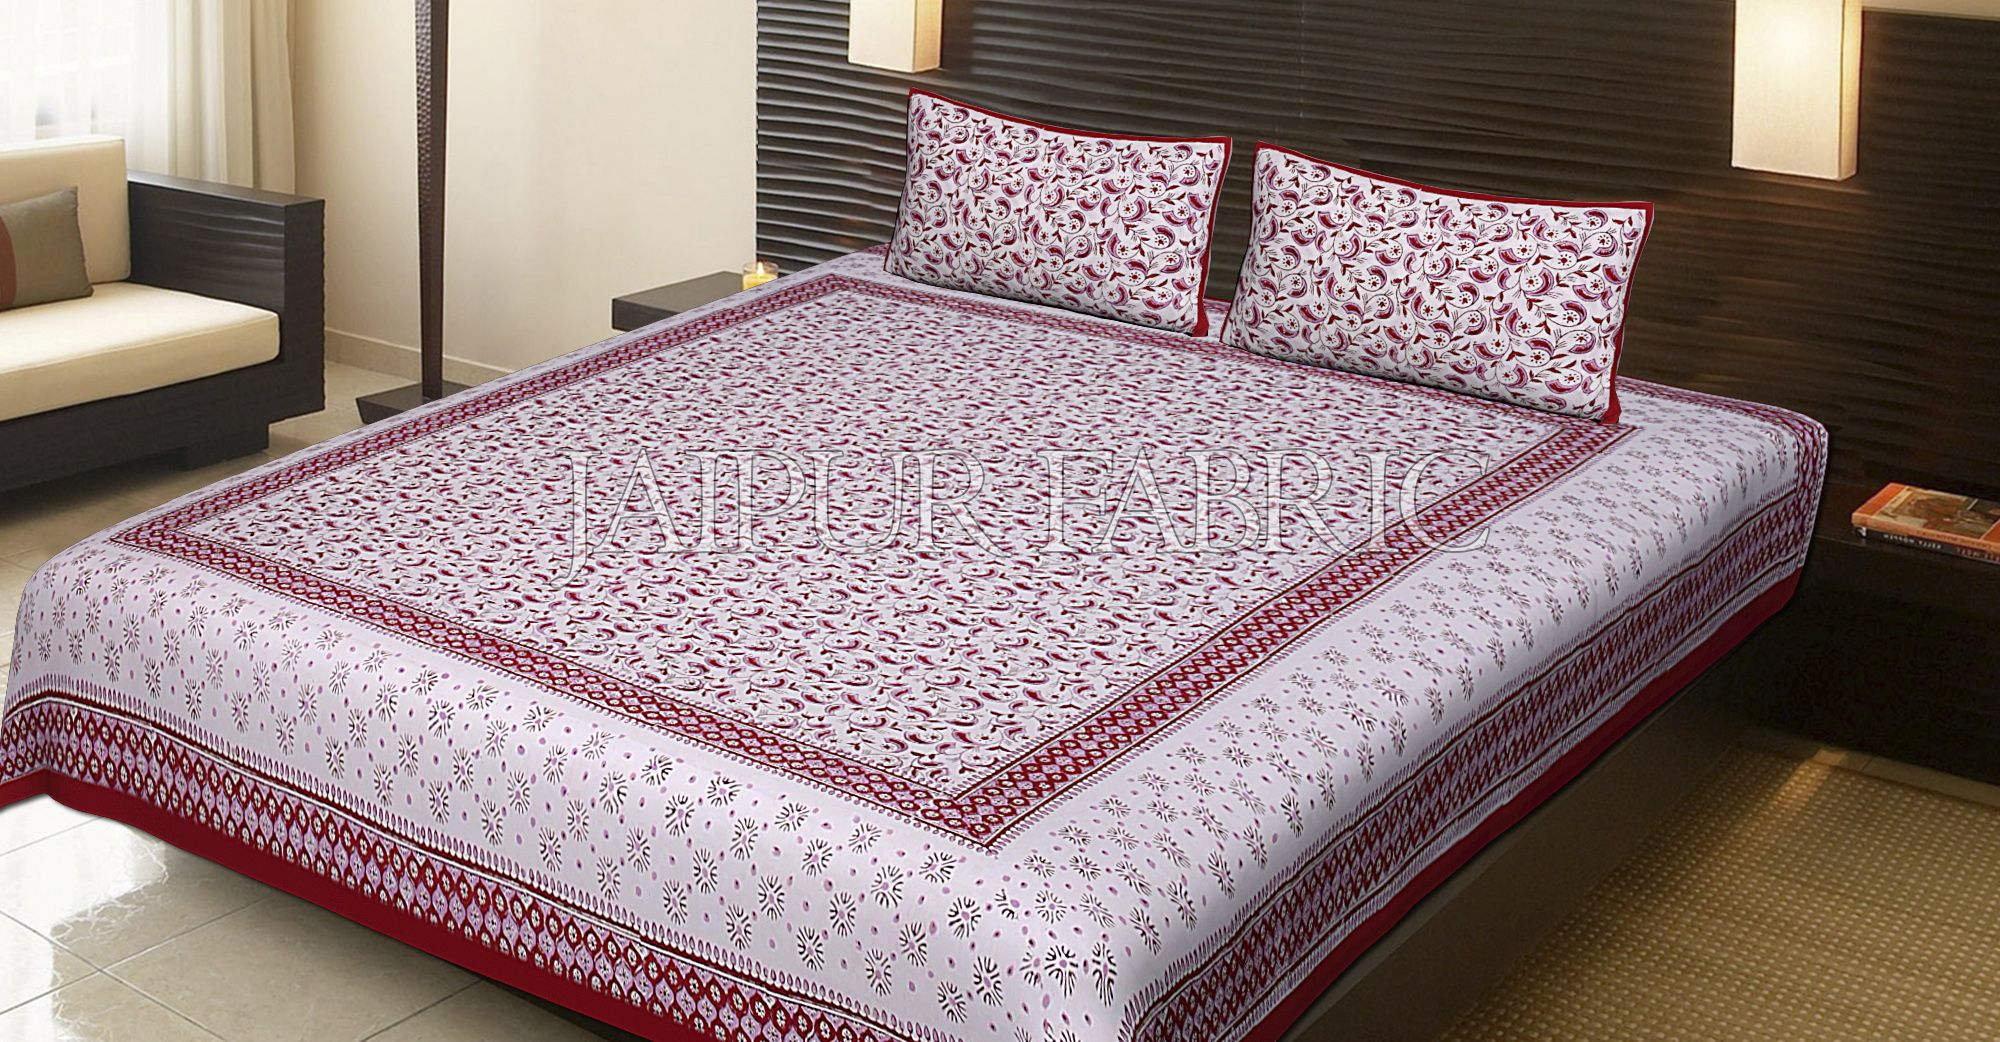 Red Border Leaf Pattern Block Print Cotton Double Bed Sheet